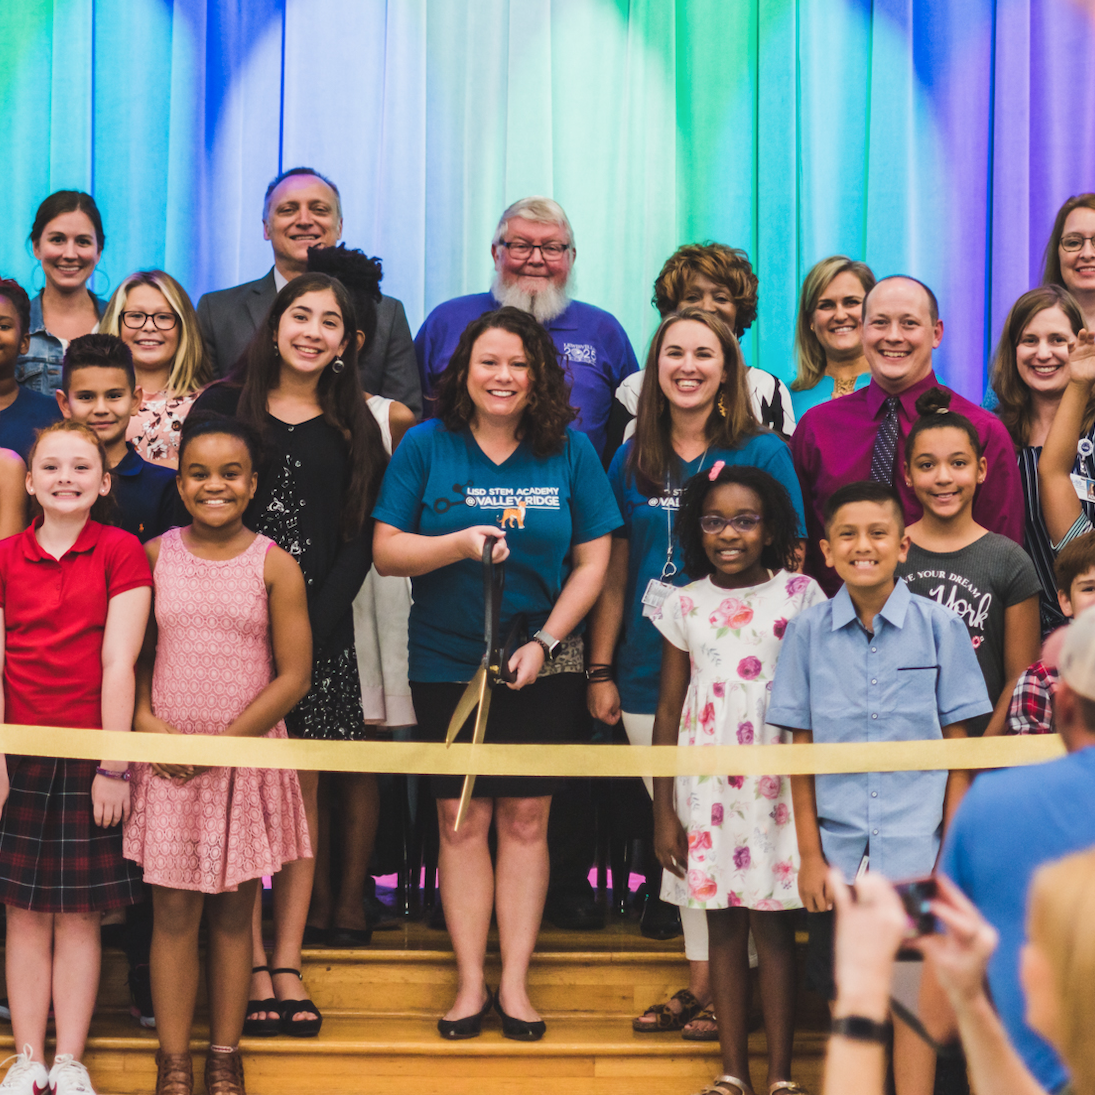 LISD STEM Academy at Valley Ridge Elementary Ribbon Cutting Ceremony small photo 2019.